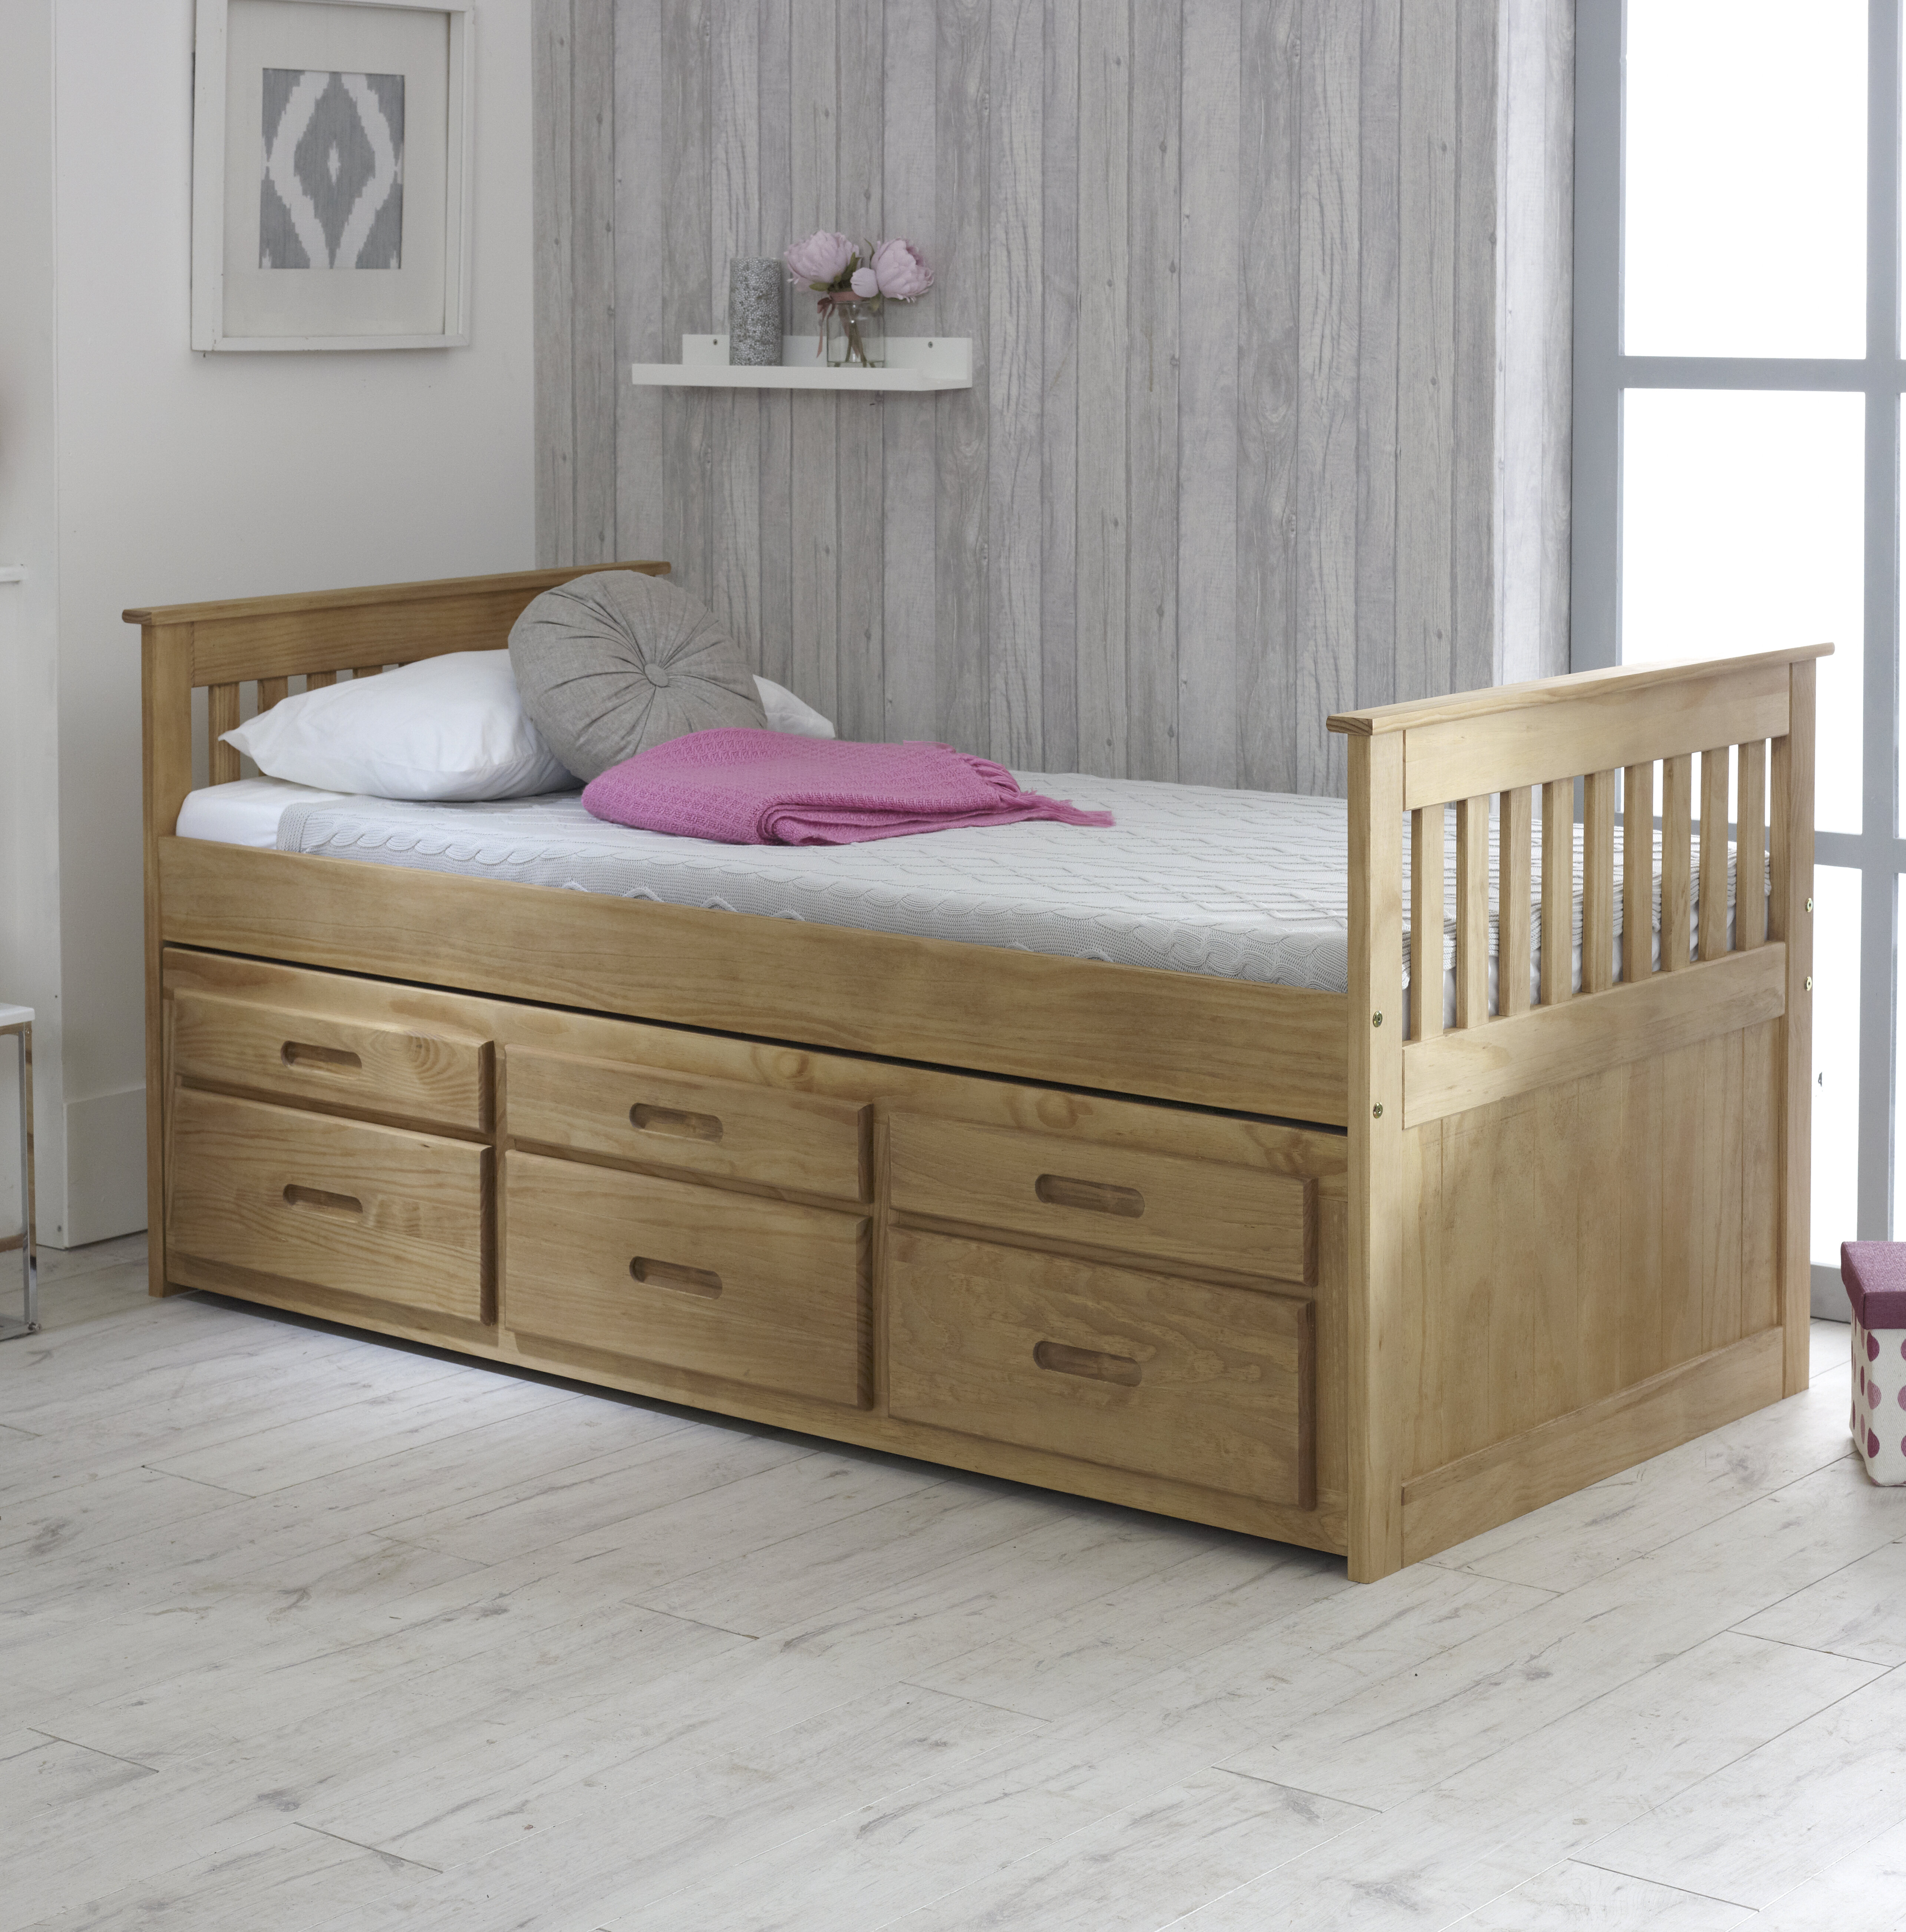 wayfair furniture nursery pdp and frankie beds desk with cabin co uk reviews flintshire bed children storage cabins